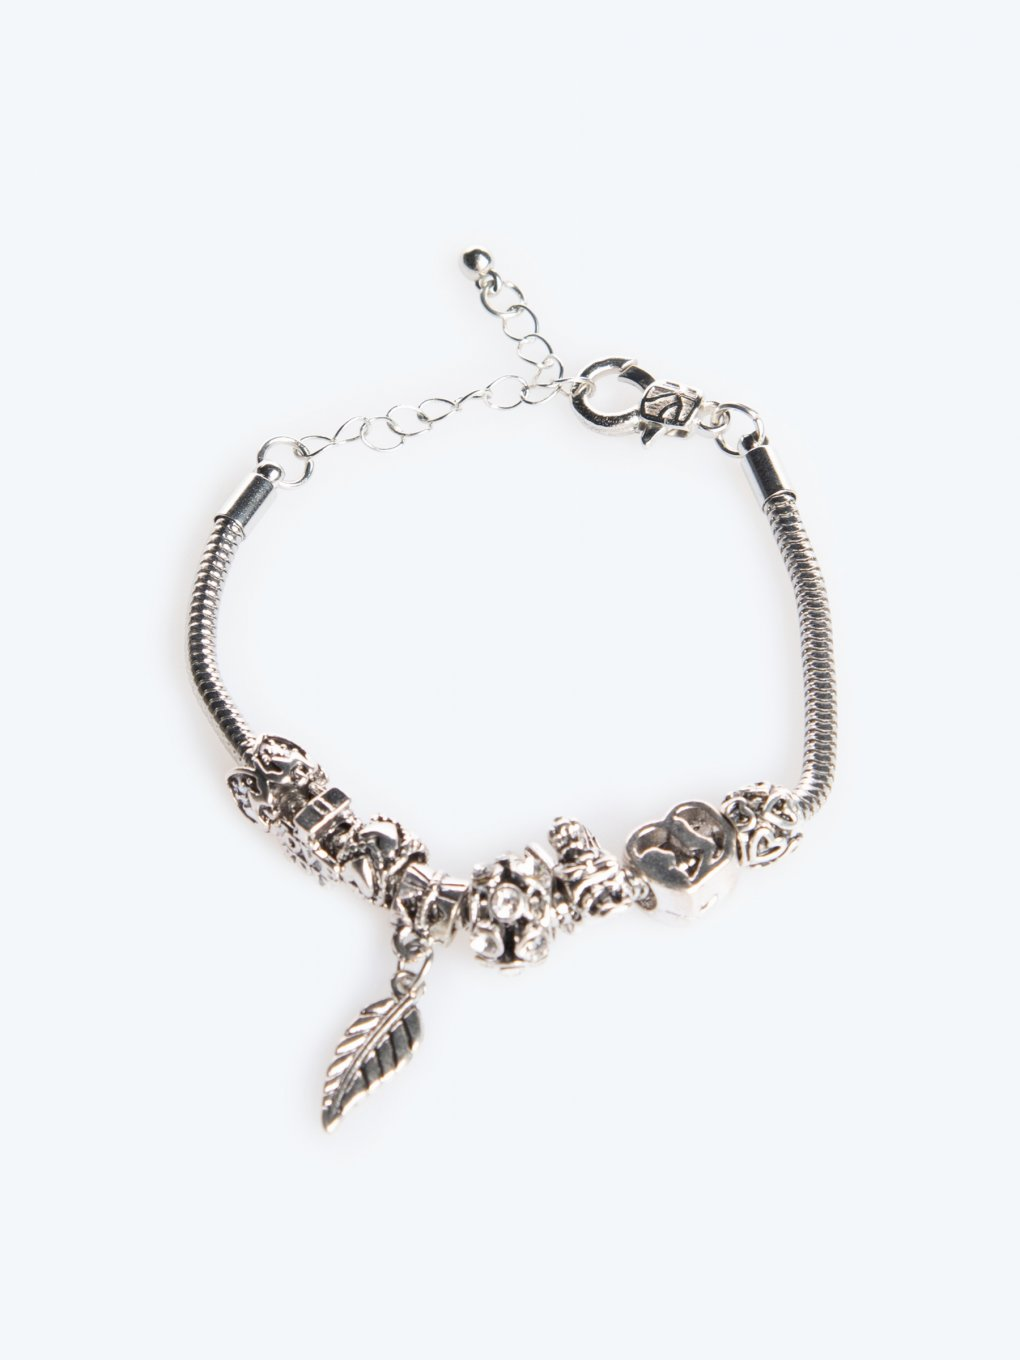 Bracelet with pendants